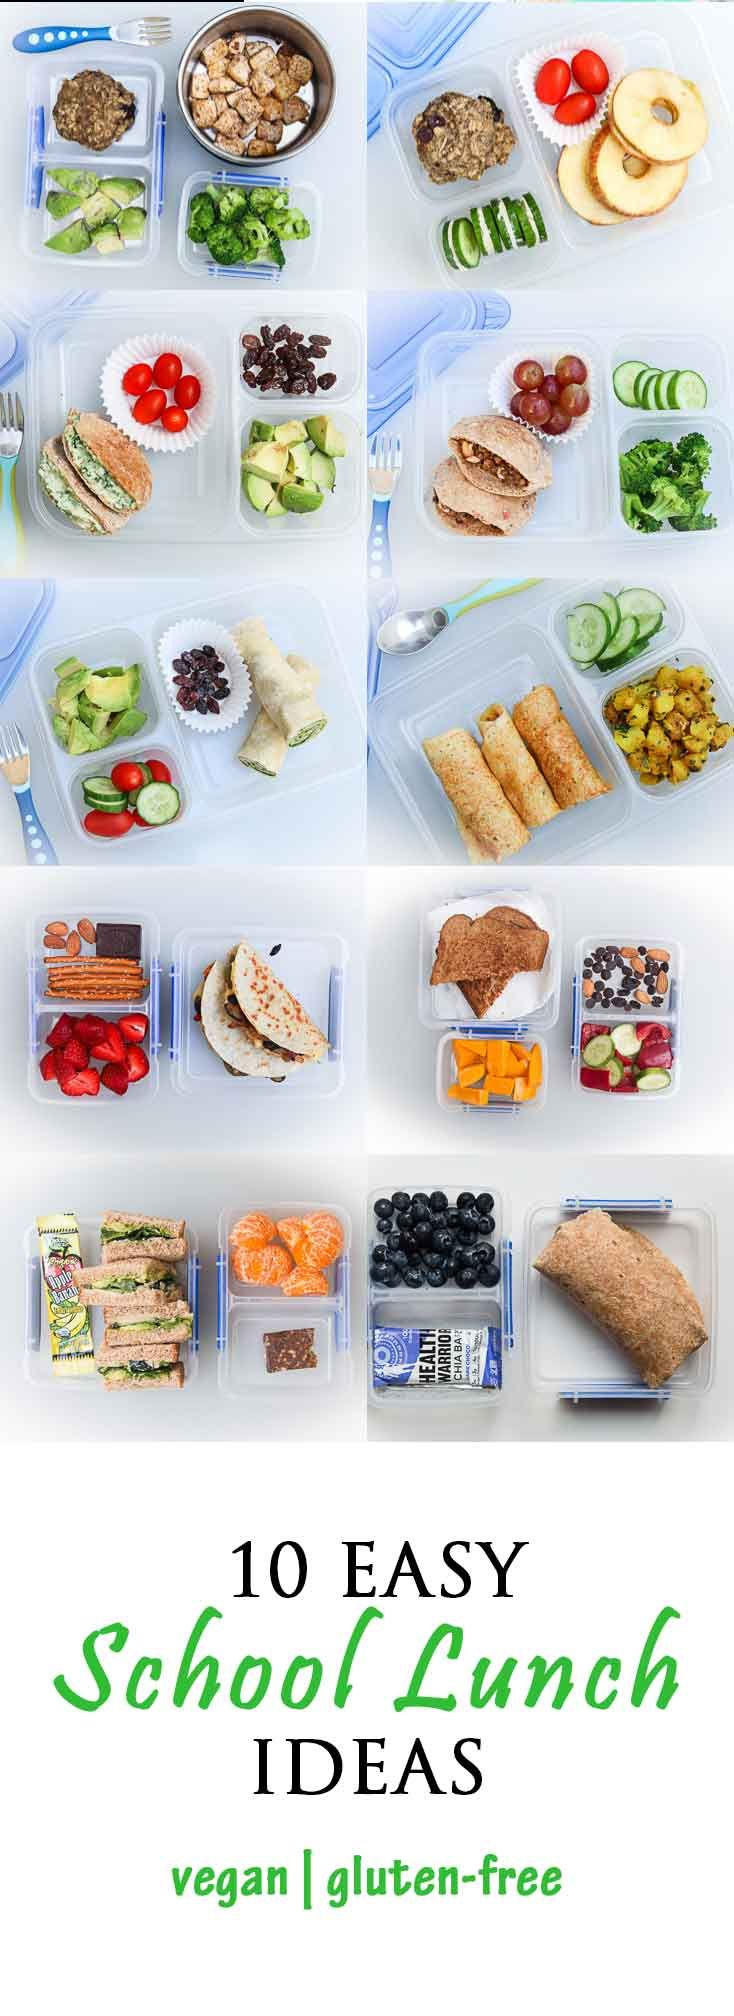 10 Easy School Lunch Ideas Vegan